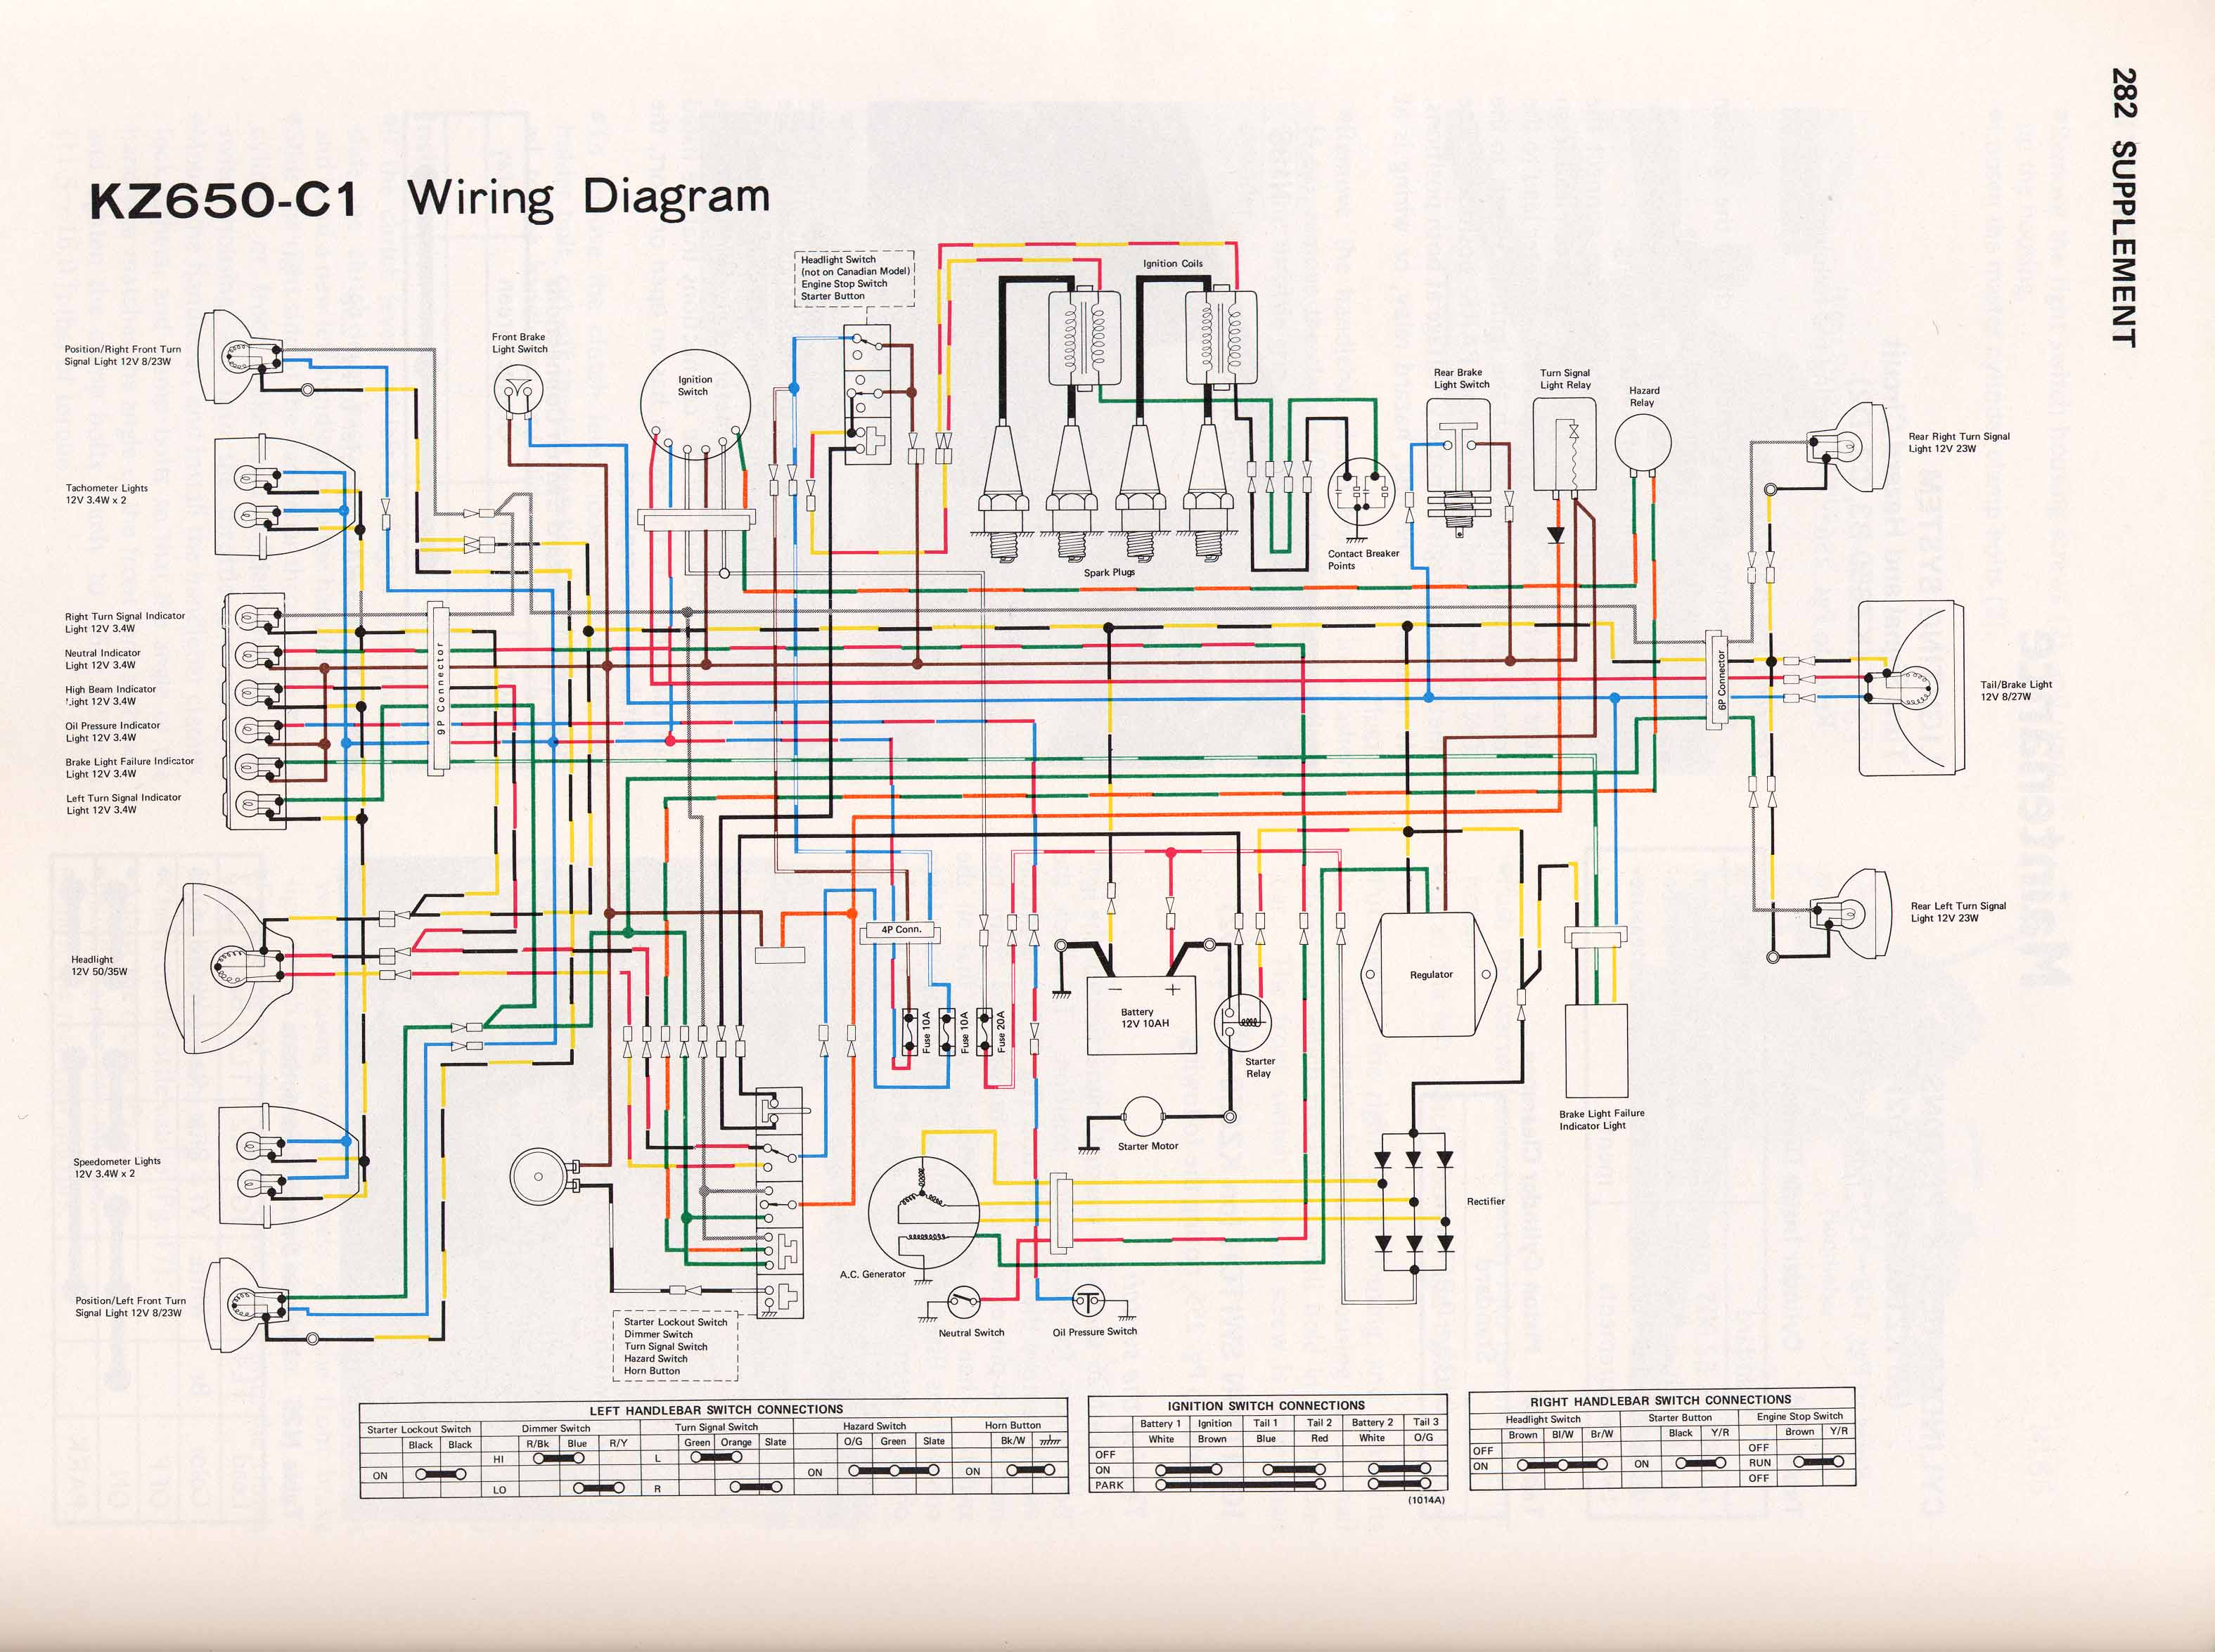 Kz650info Wiring Diagrams 12v Tip Diagram Kz650 C1